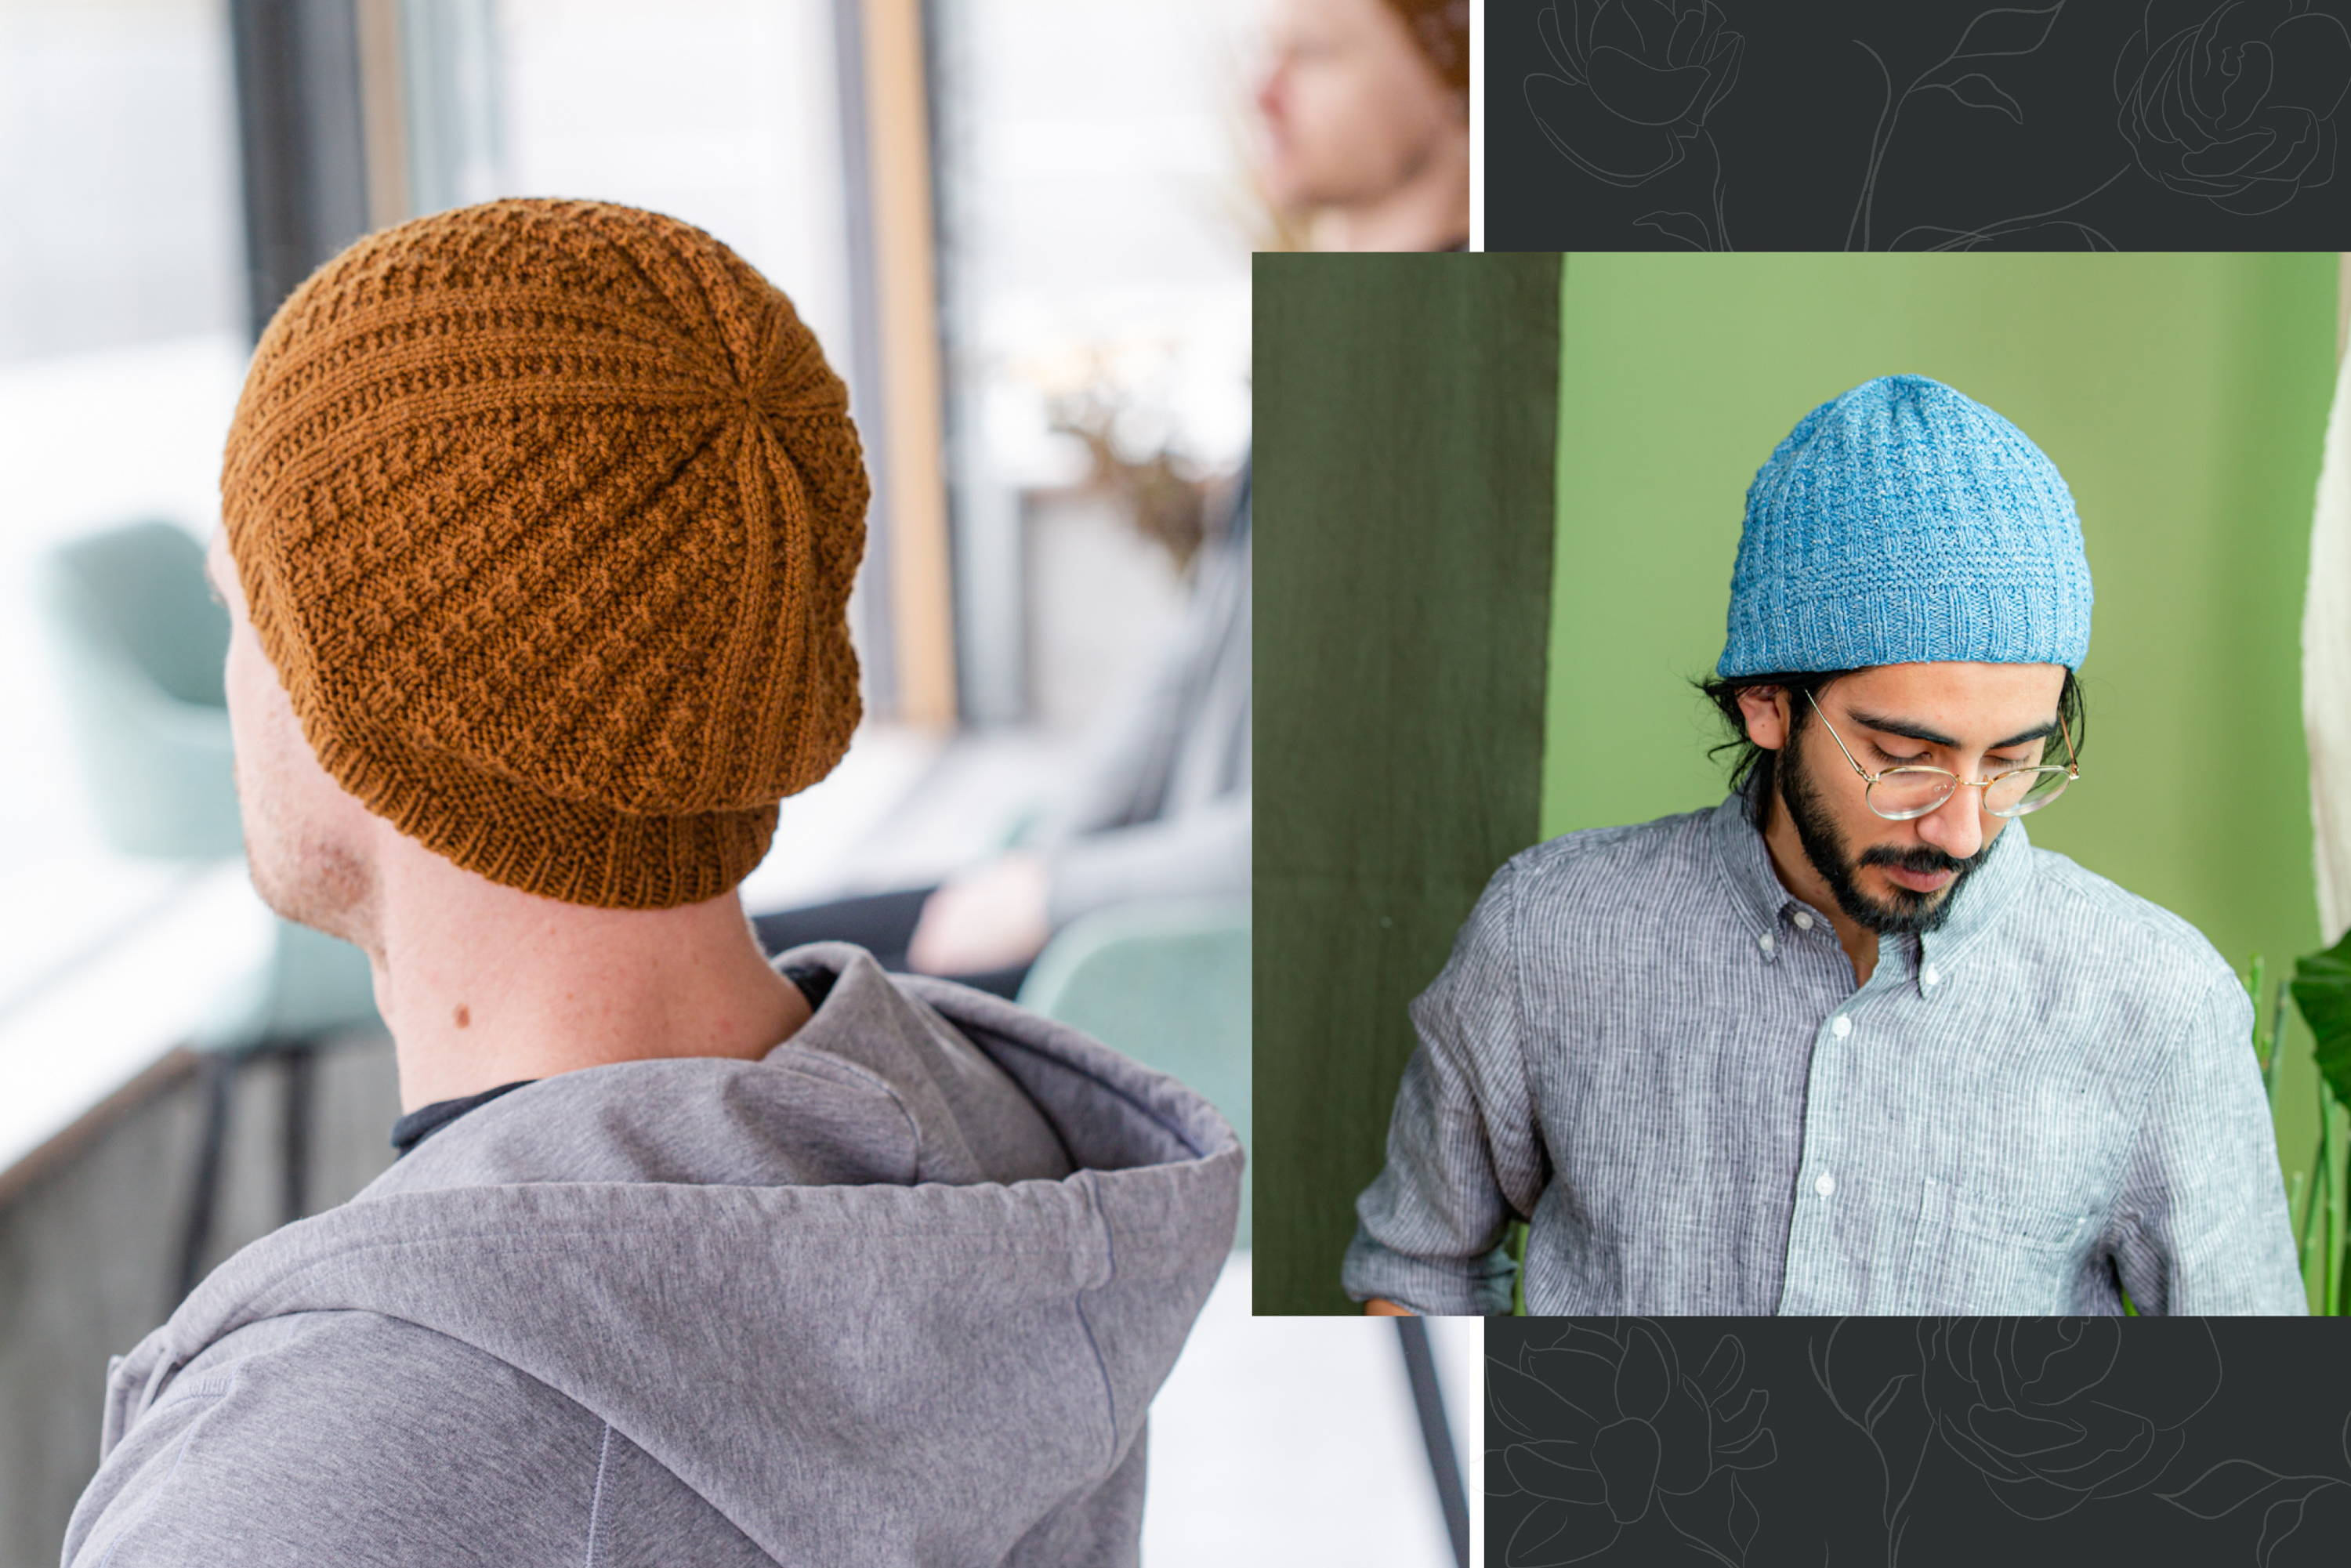 Image of Brian modeling Gault hat back view and Omar modeling Gault front view